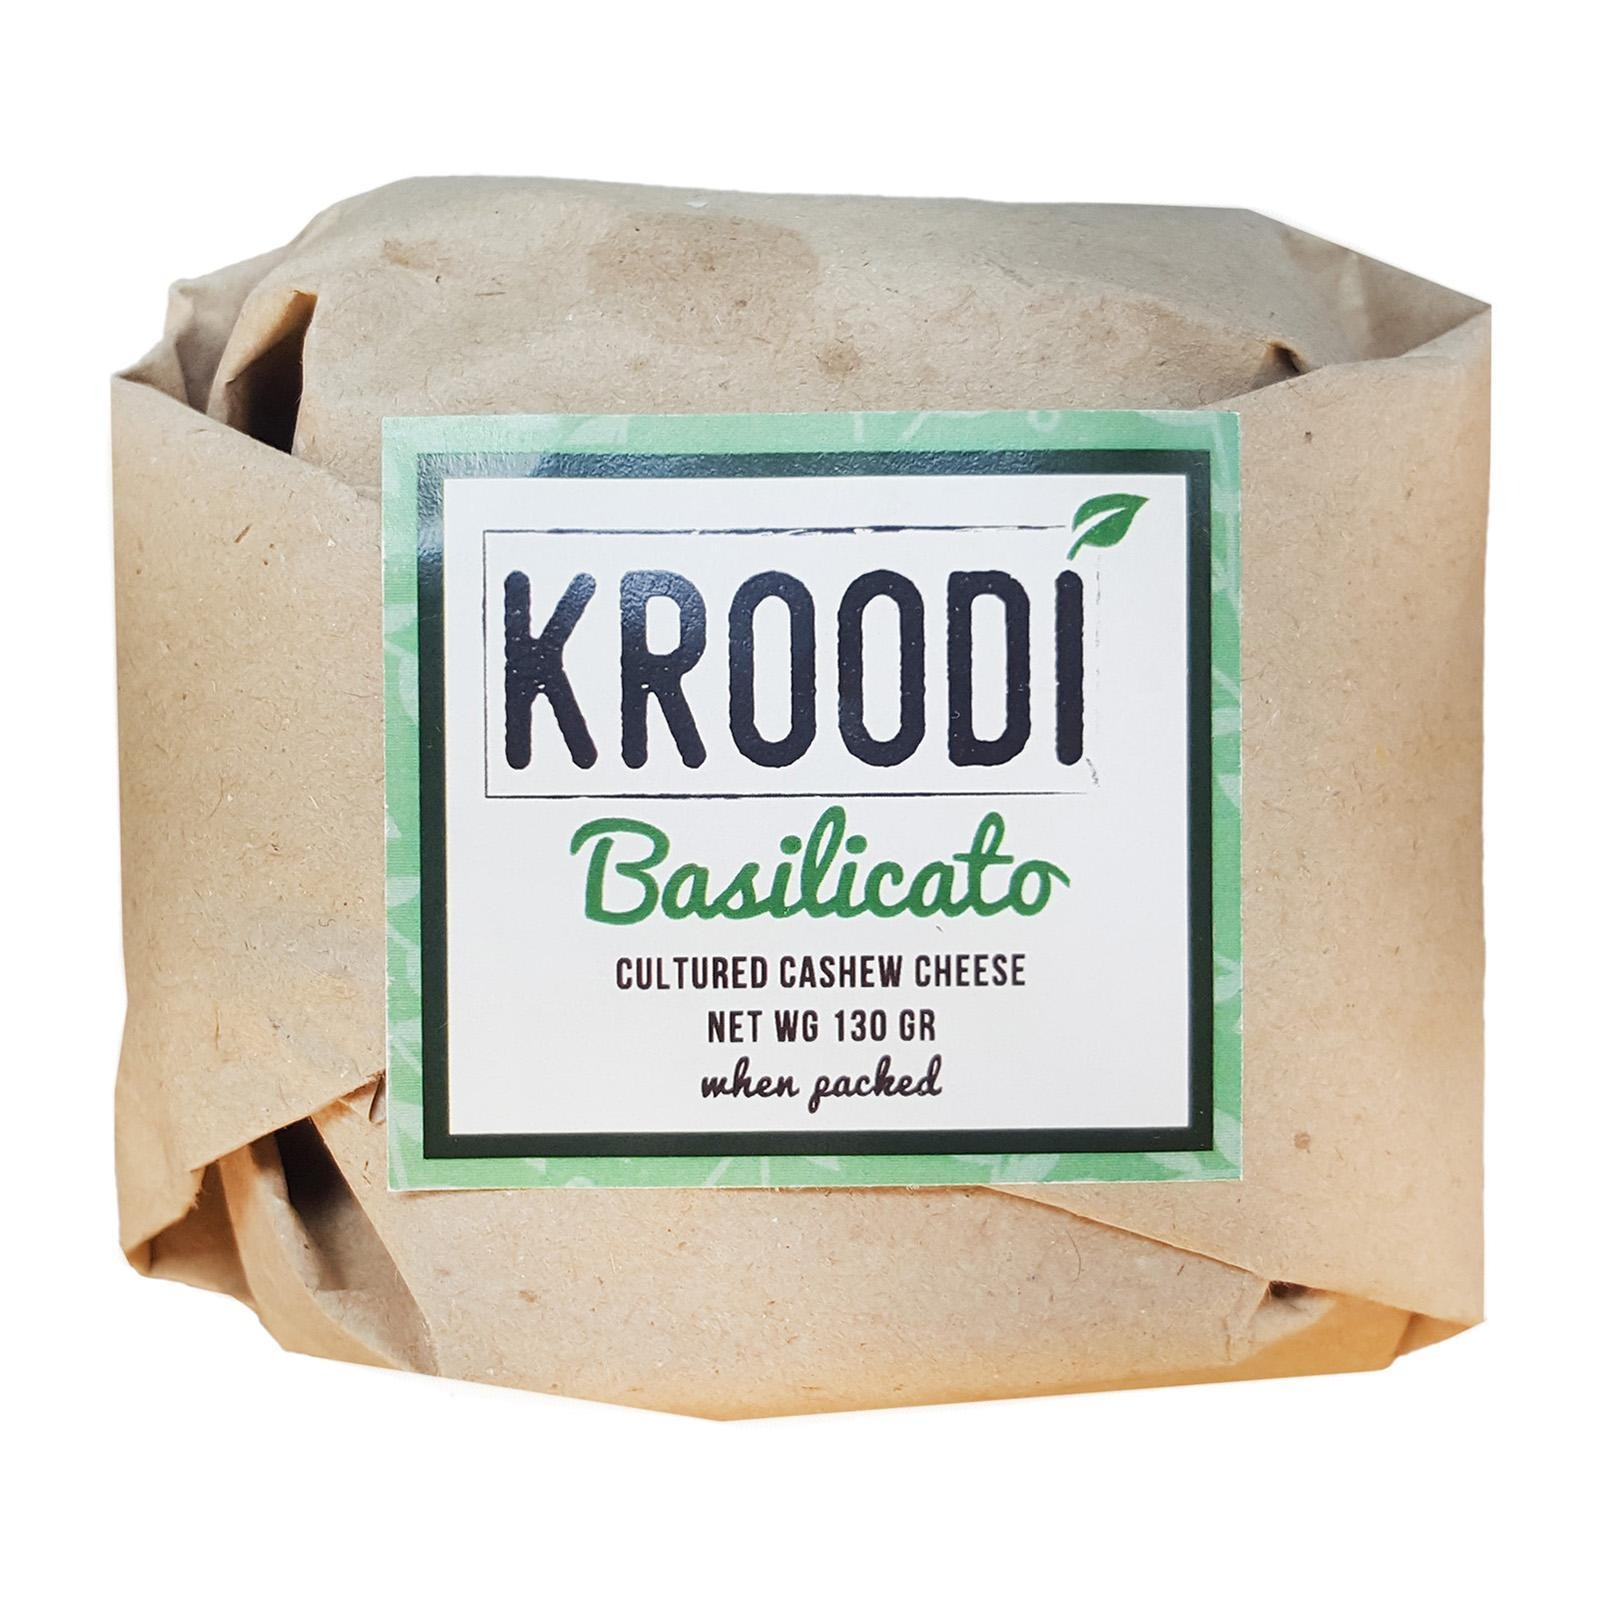 KROODI Vegan Cheese - Basilicato